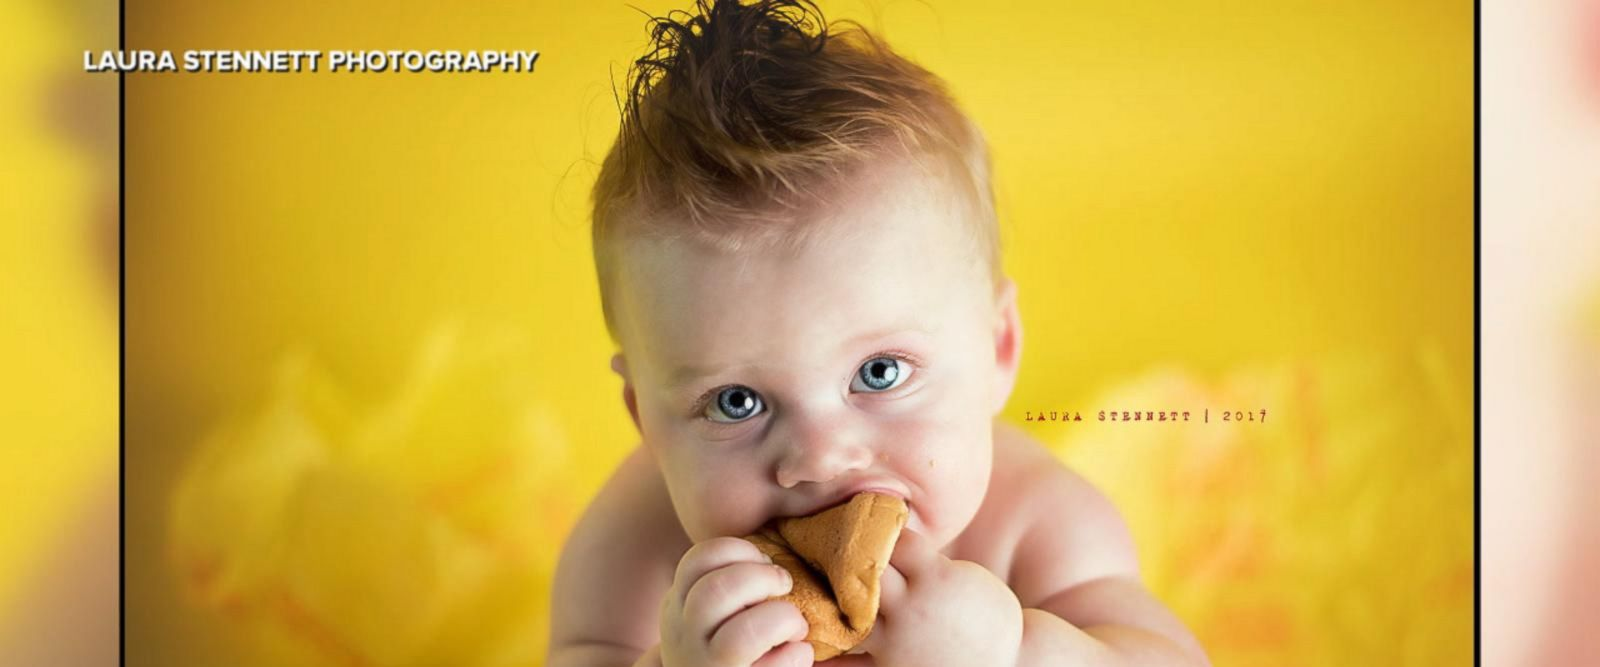 VIDEO: Mom responds to backlash about her son's cheeseburger-filled photo shoot